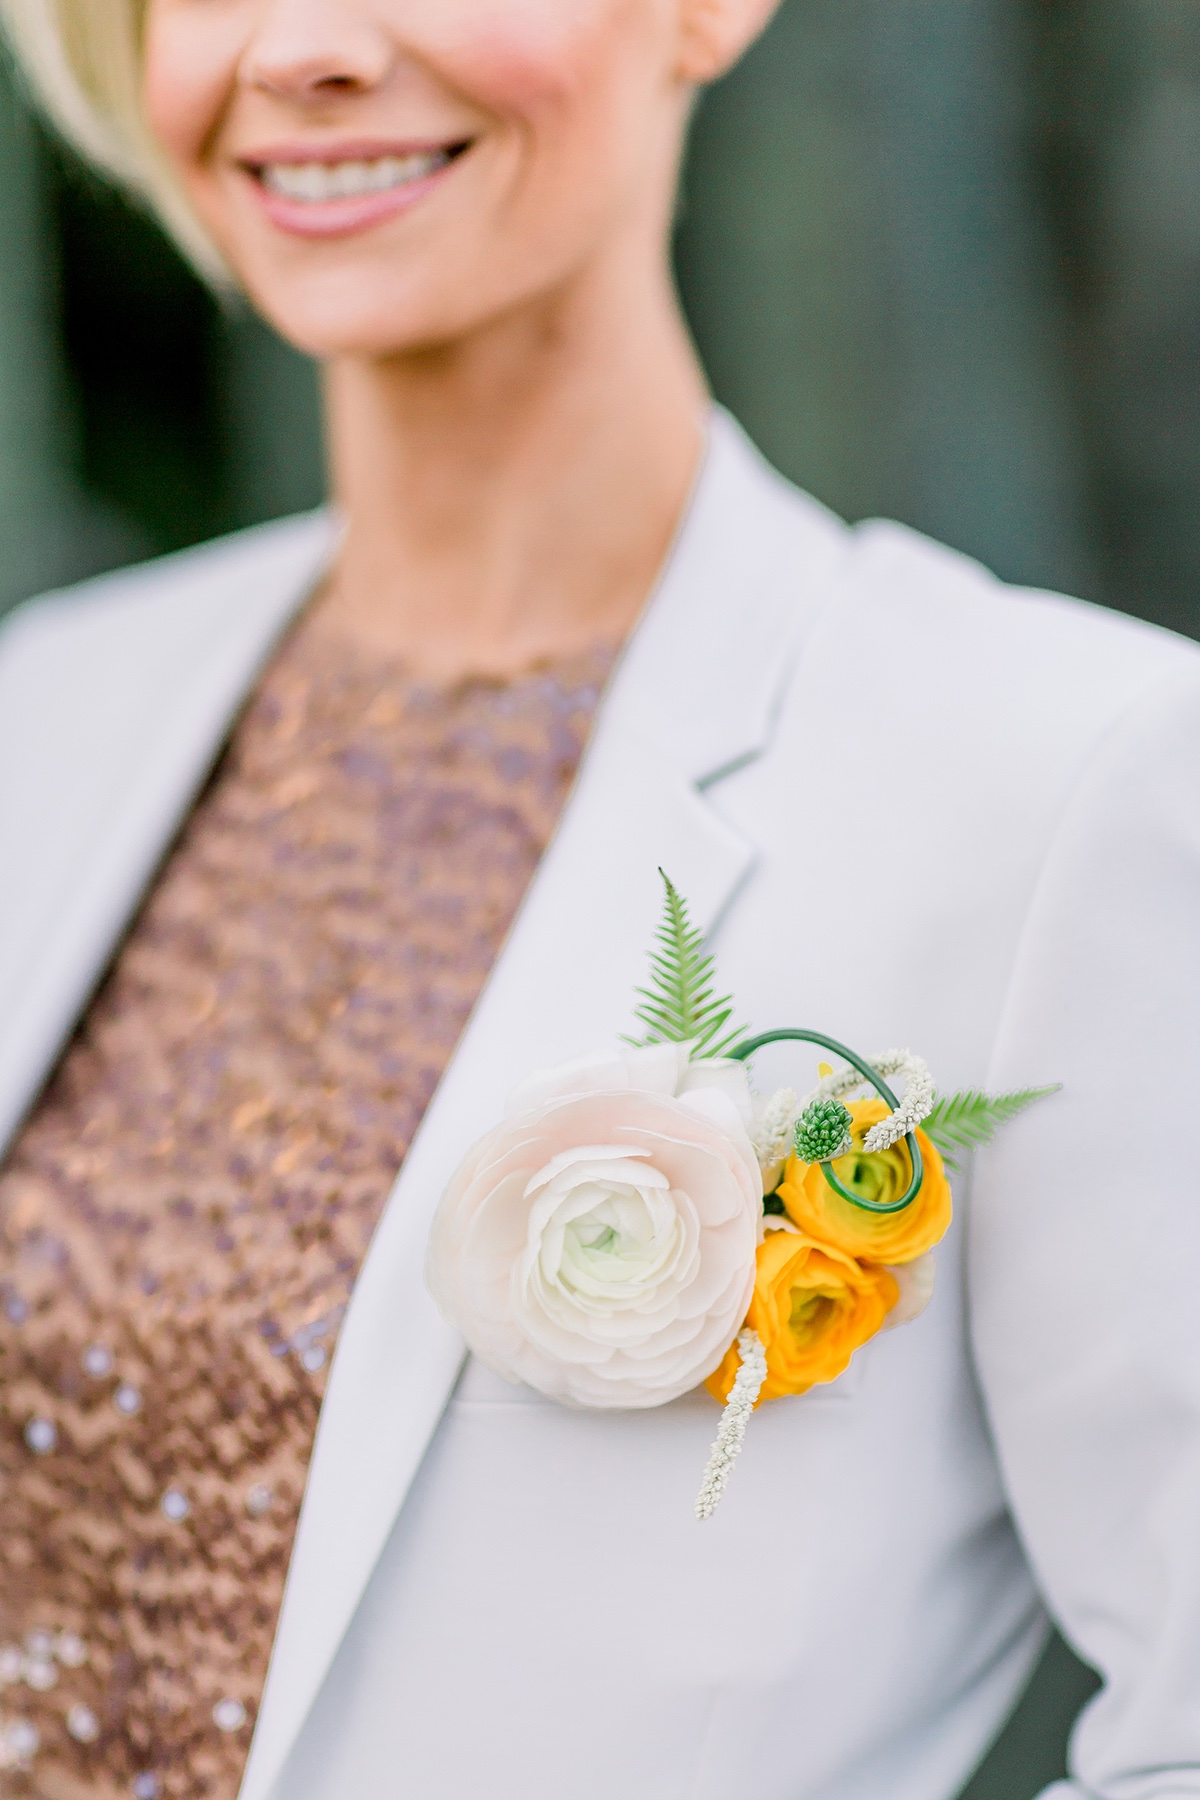 The Epitome of Elopement Style